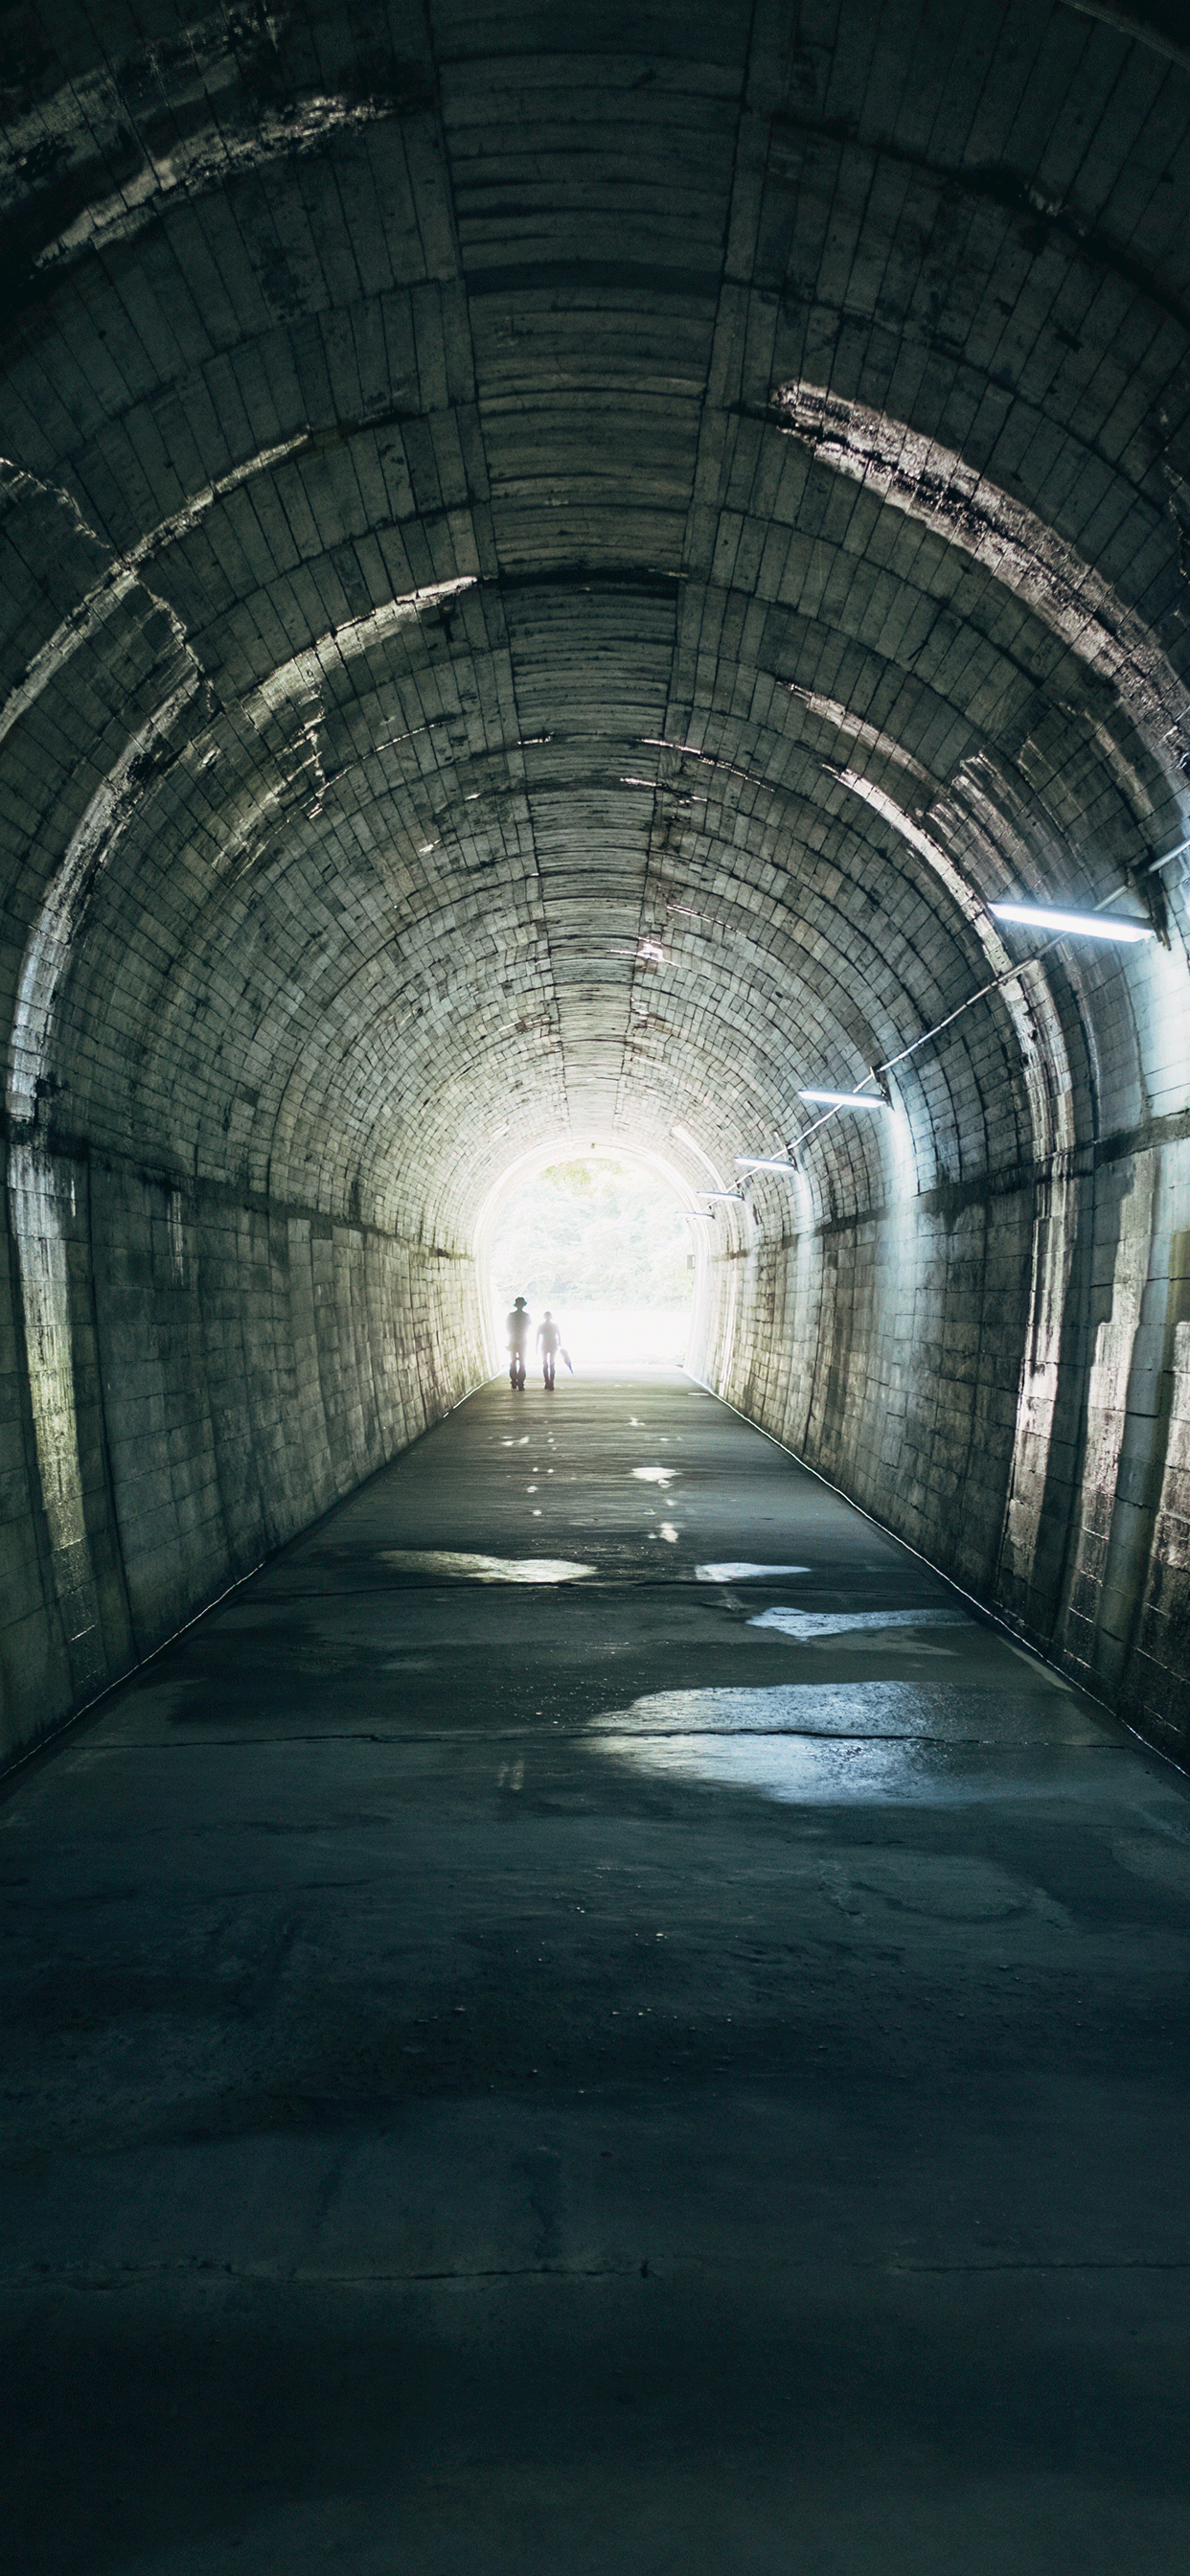 iPhone wallpapers tunnel kagoshima japan Fonds d'écran iPhone du 31/05/2019